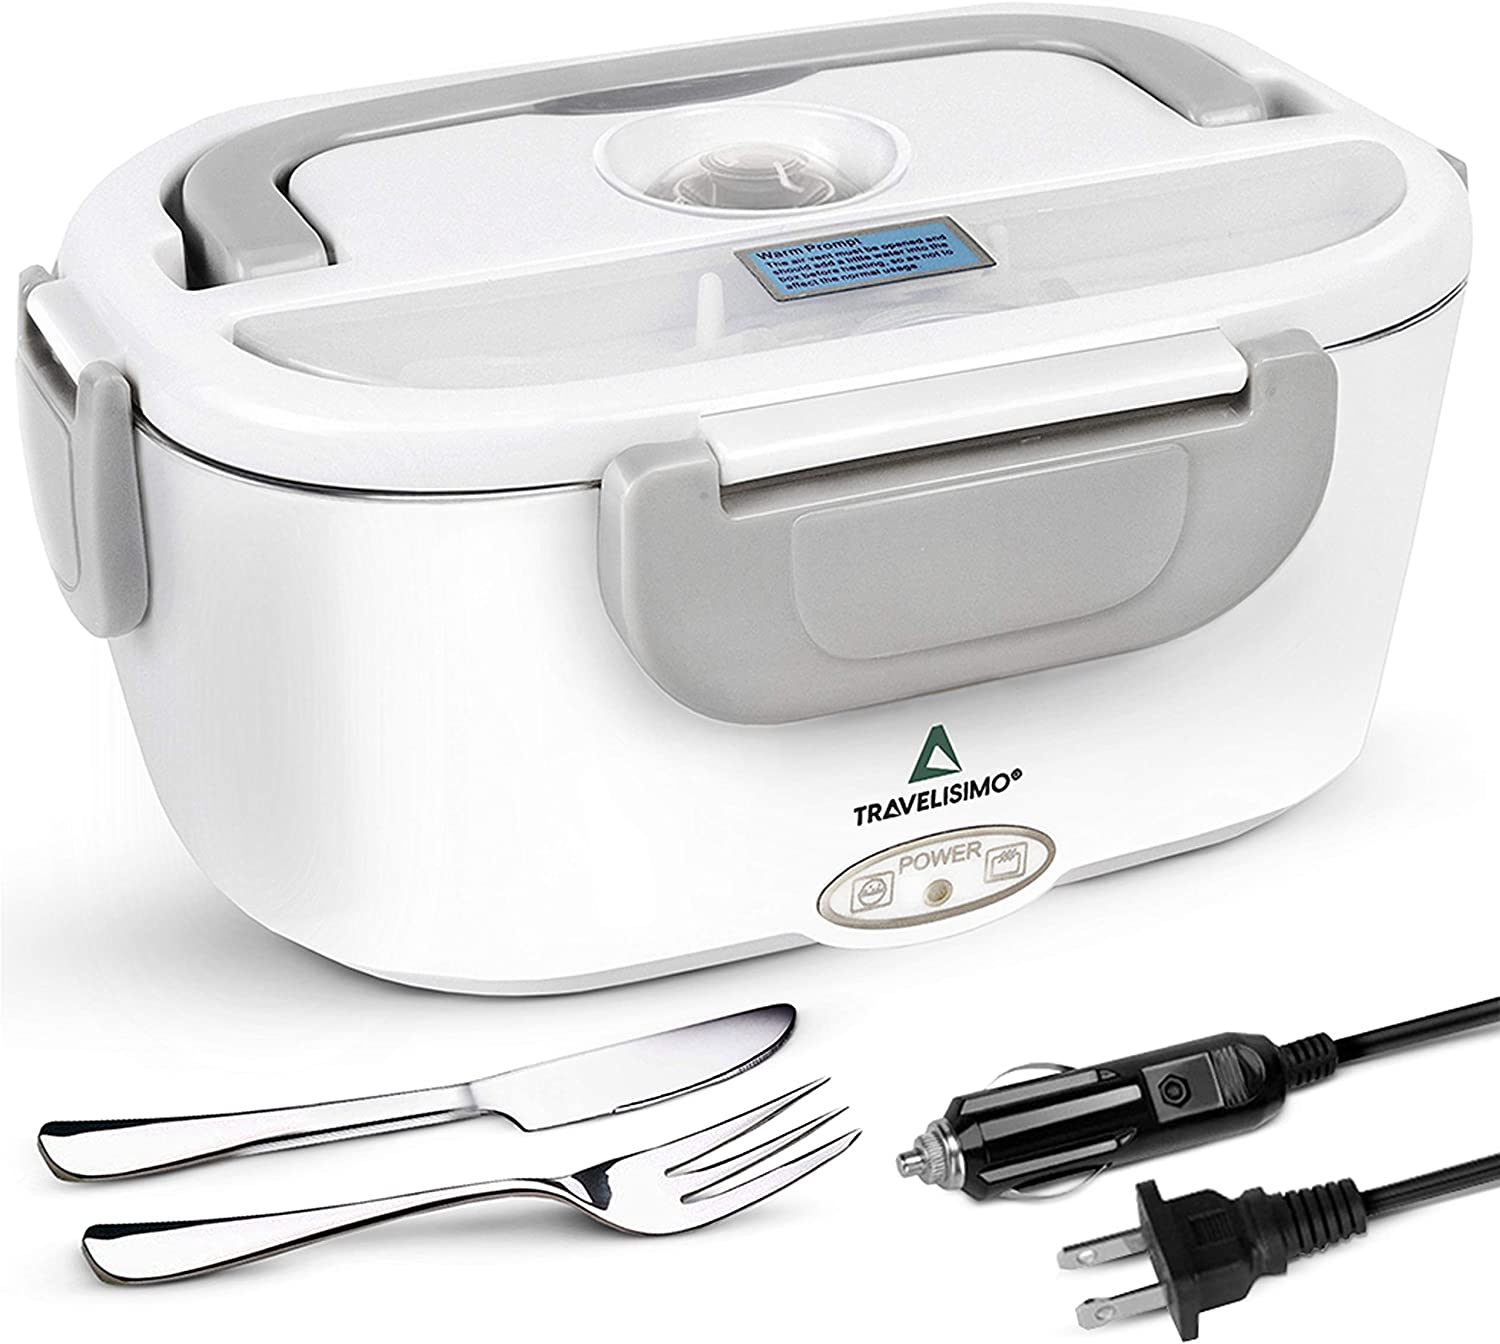 TRAVELISIMO Electric Lunch Special Campaign Box 2 in Cheap bargain 1 Food for Warmer - Portable